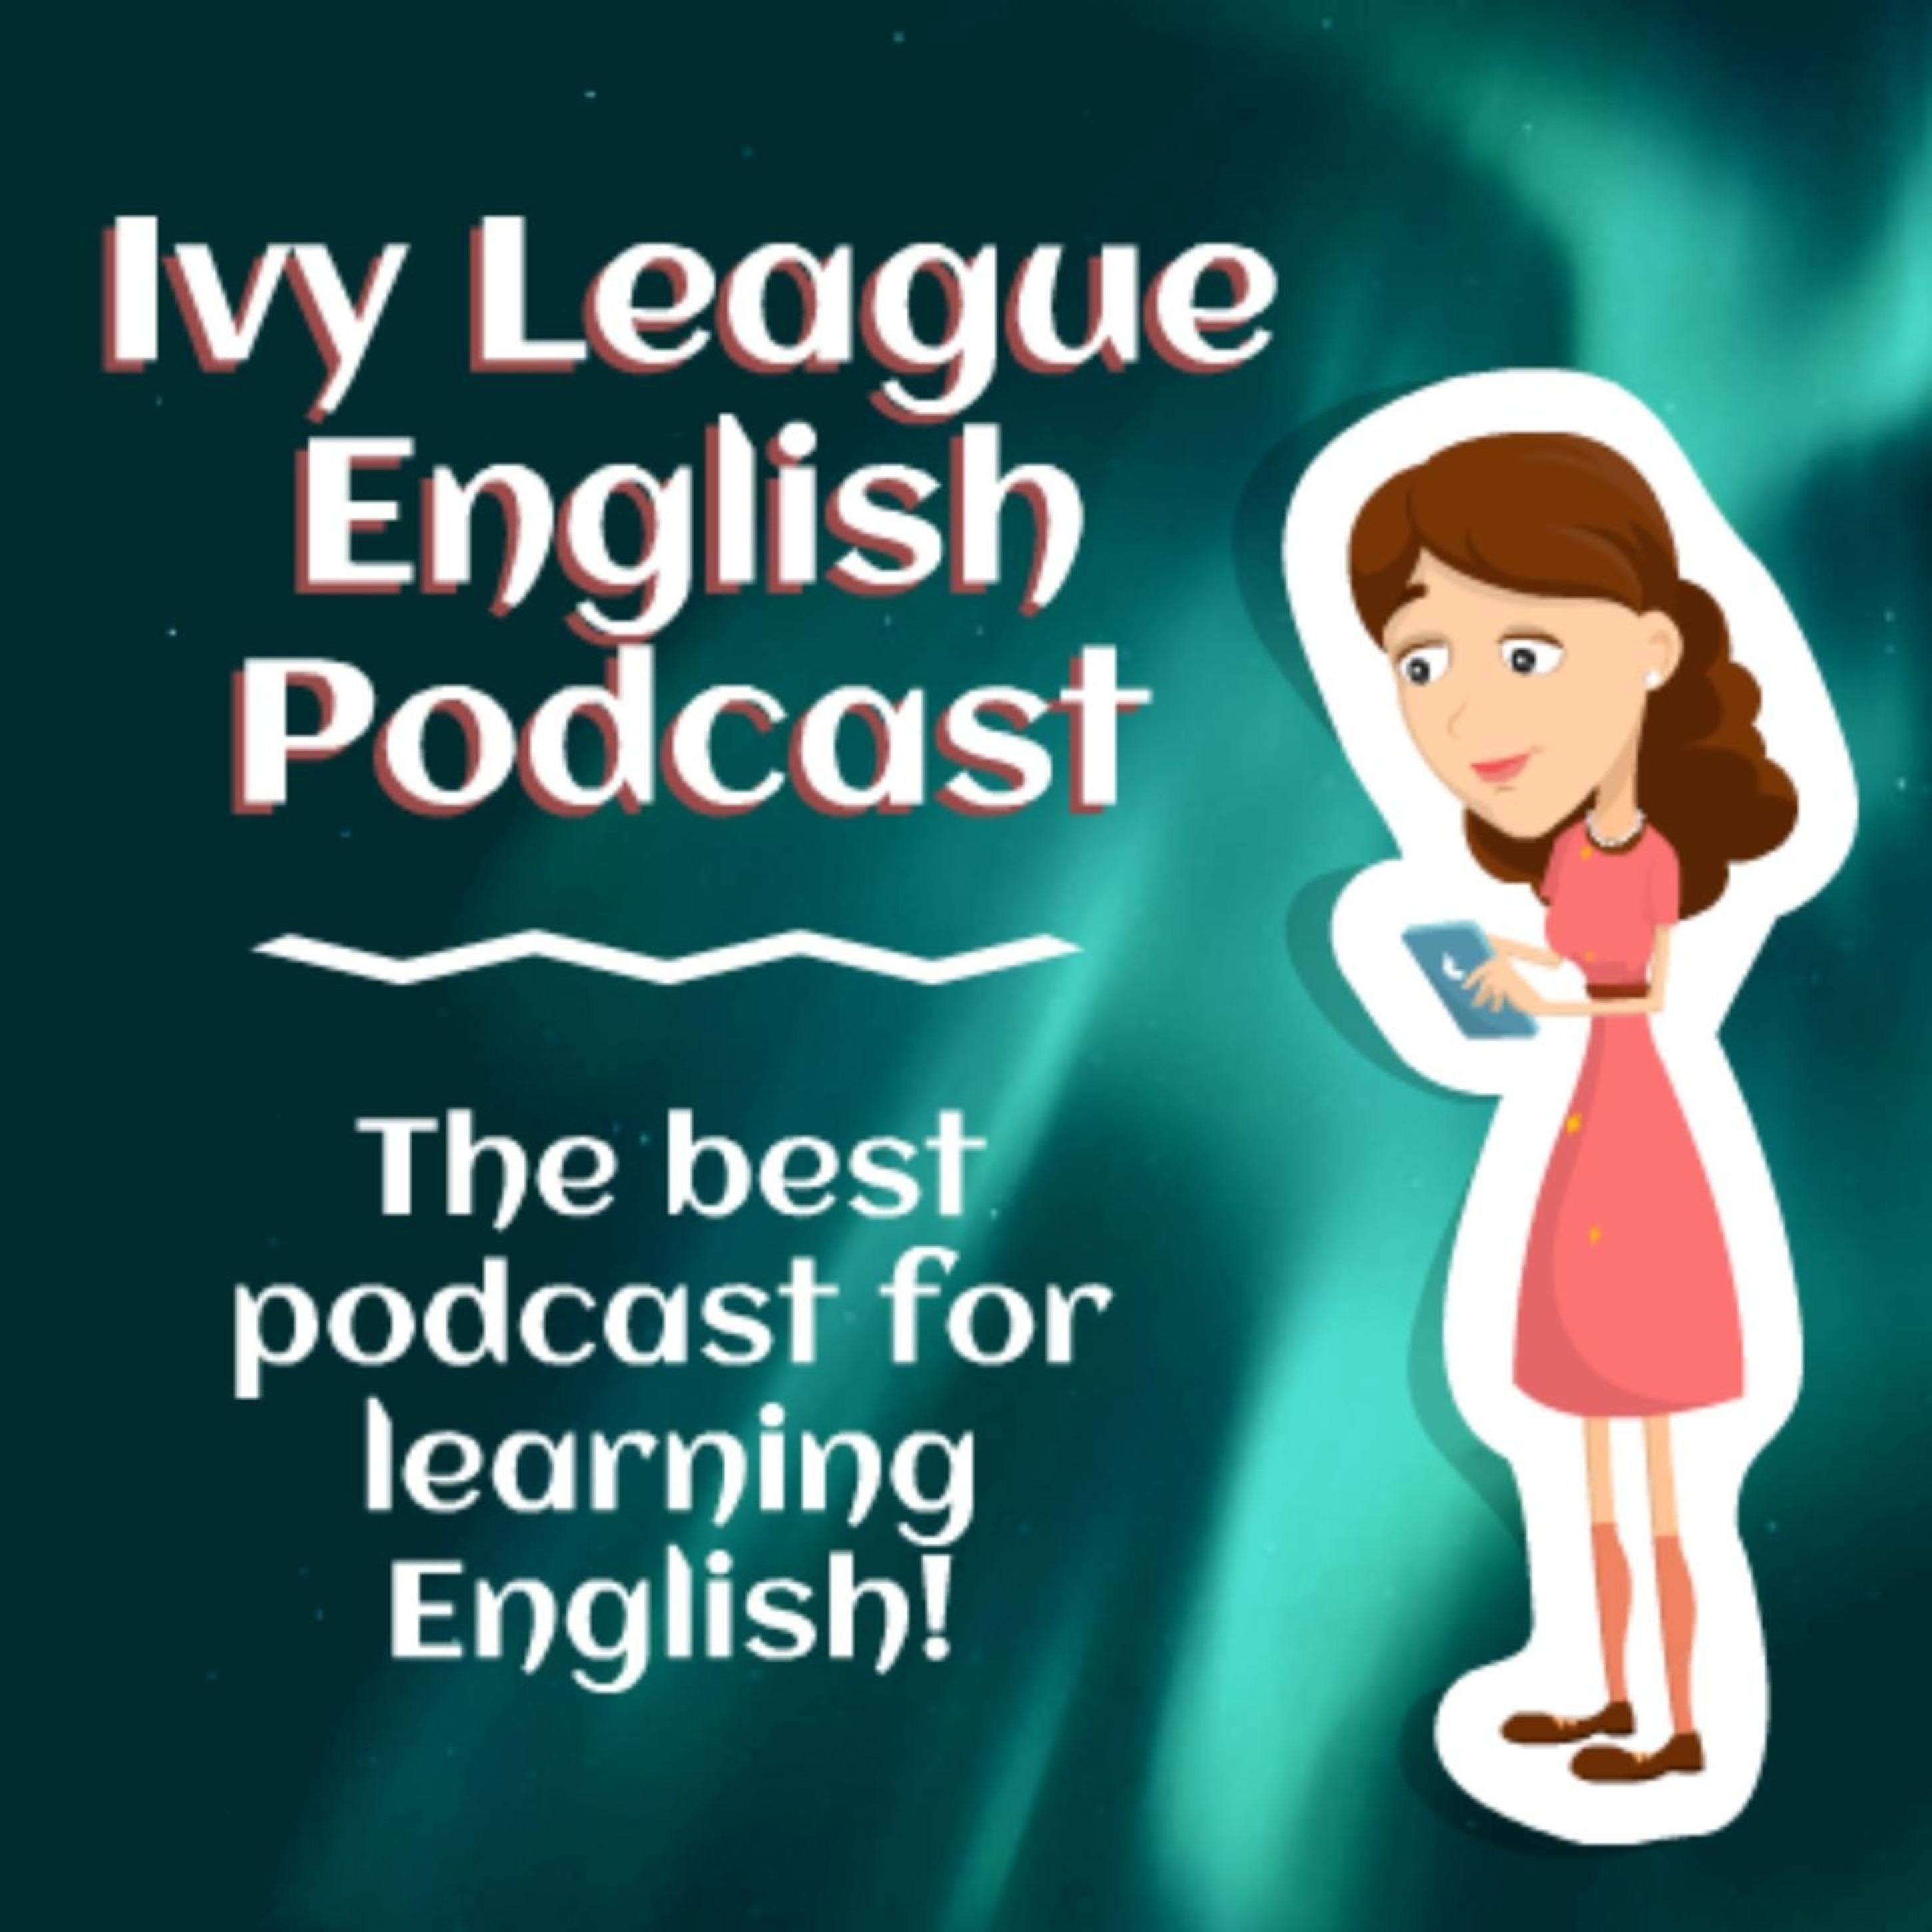 Ivy League English:Best English Podcast for Learning English